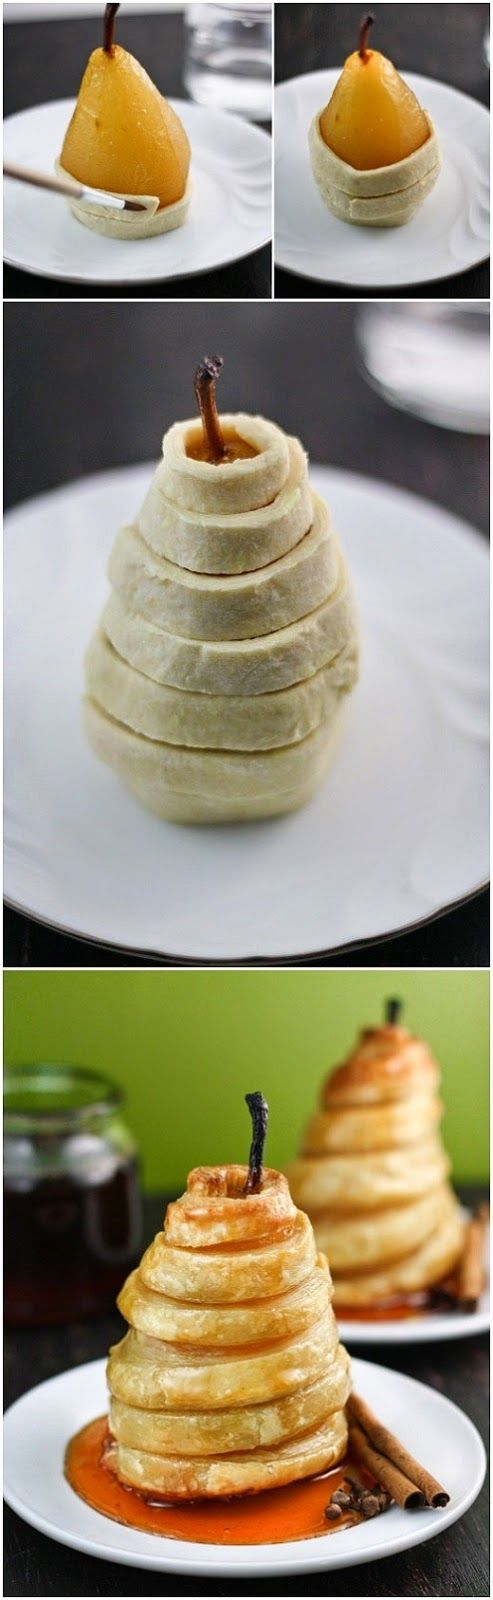 Pear and pastry dessert